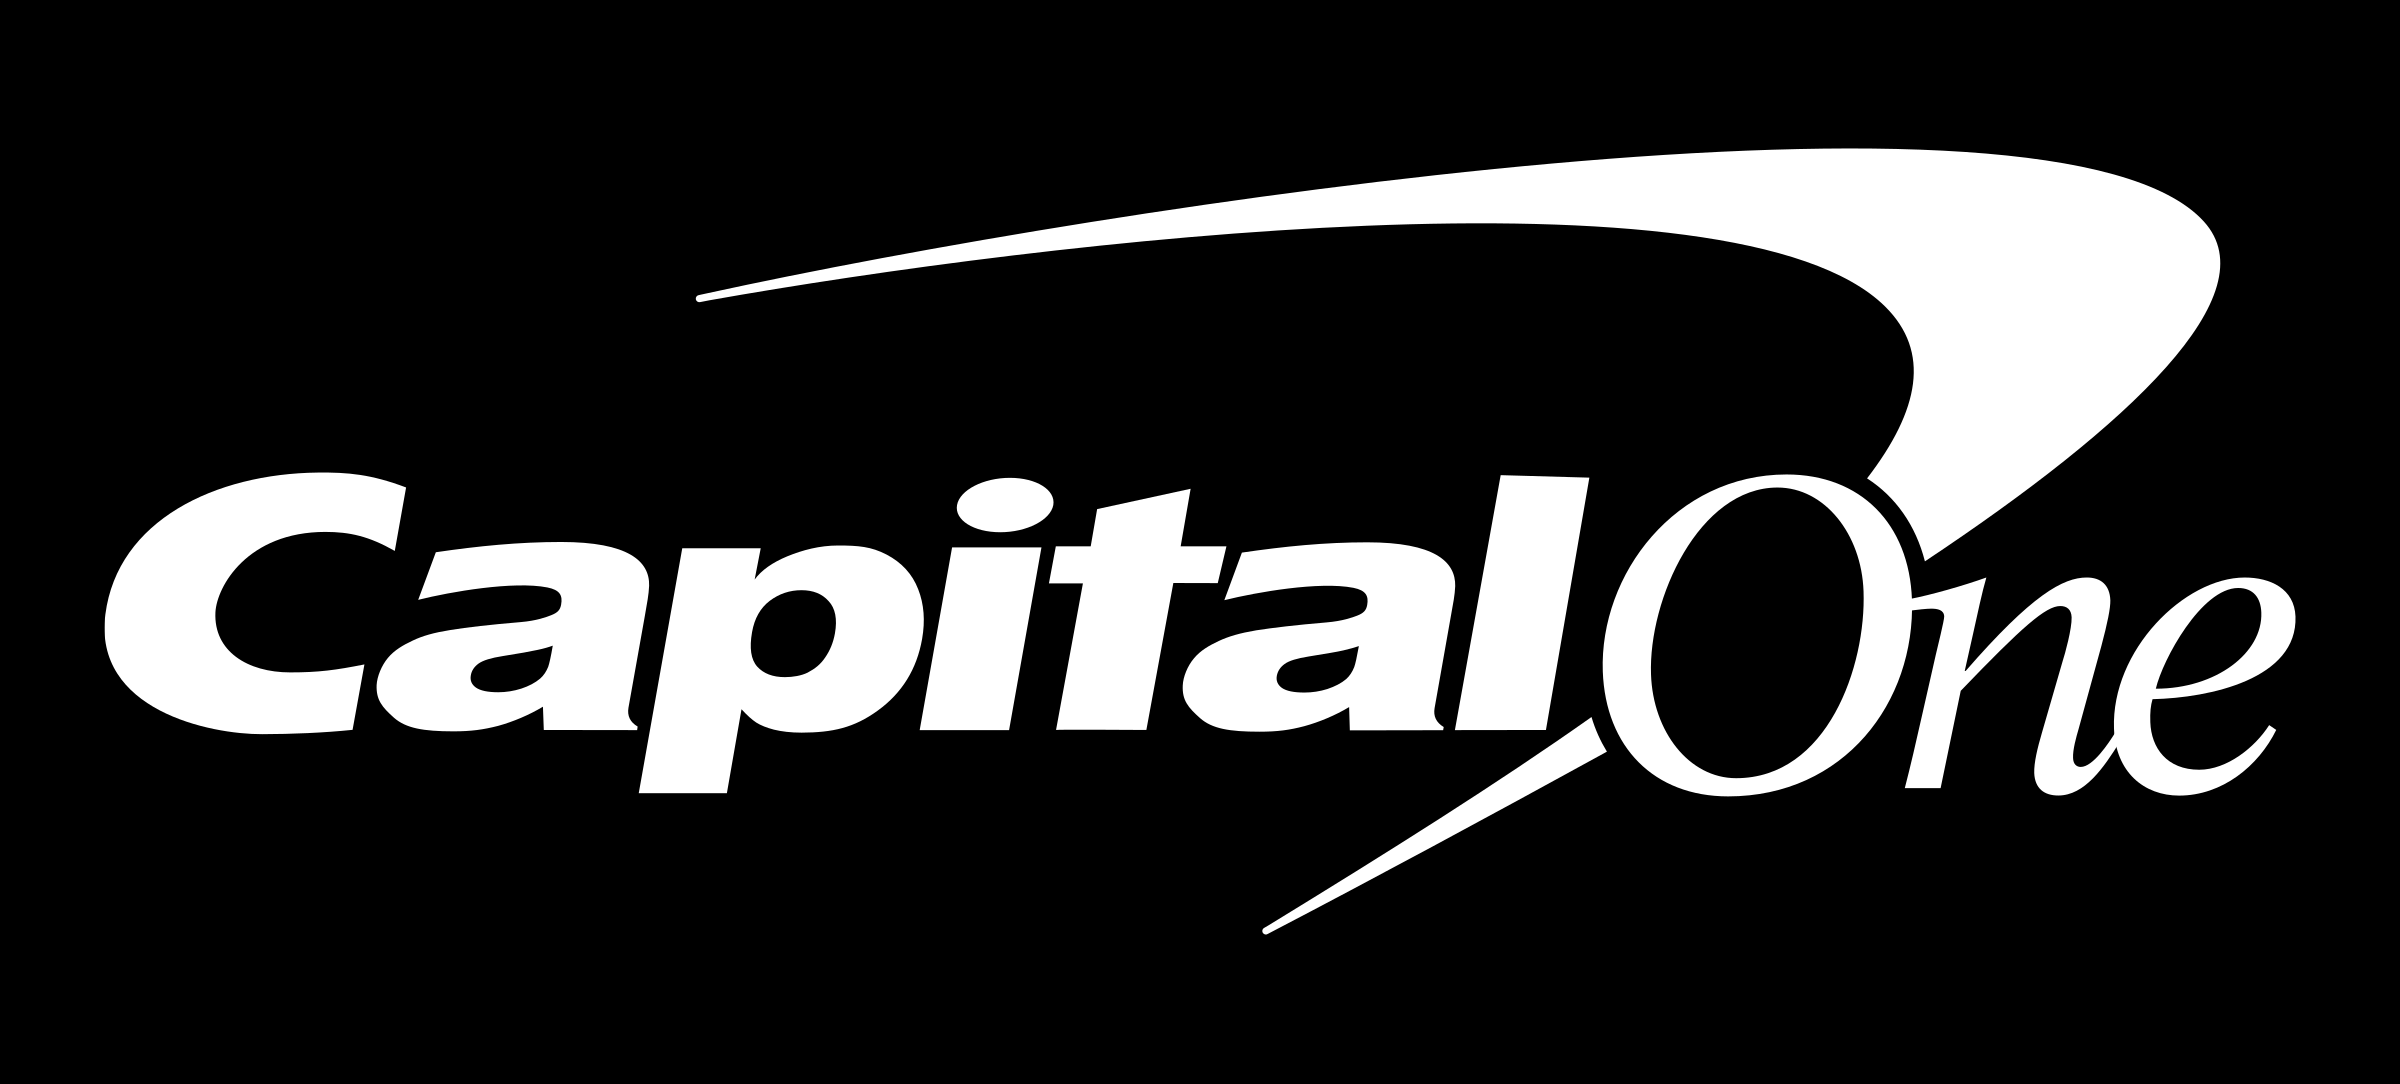 Capital One Logo White - Capital One Vector PNG